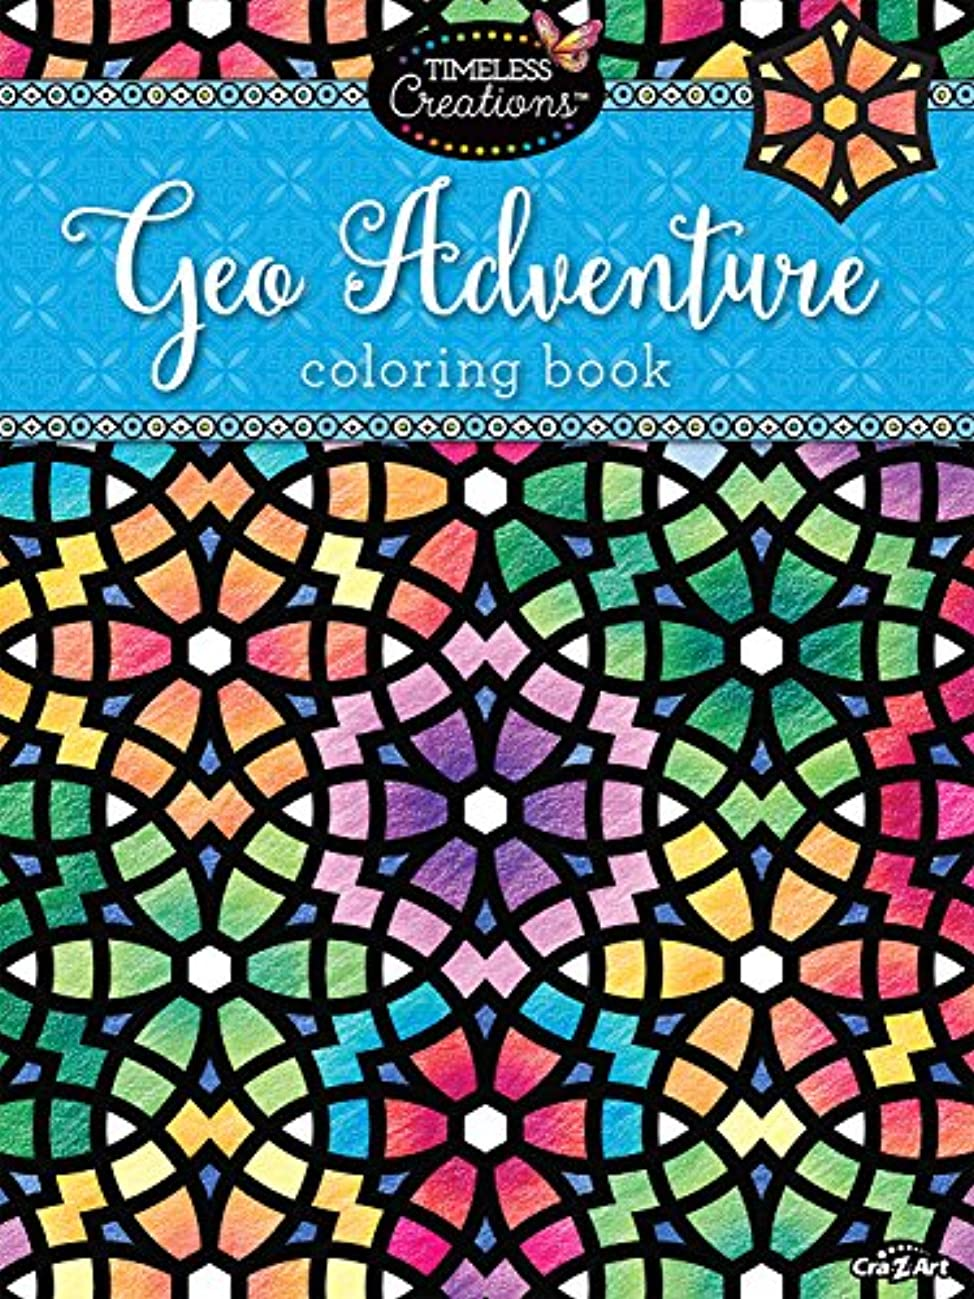 Cra-Z-Art Timeless Creations Adult Coloring Books: Geo Adventures Creative Coloring Book